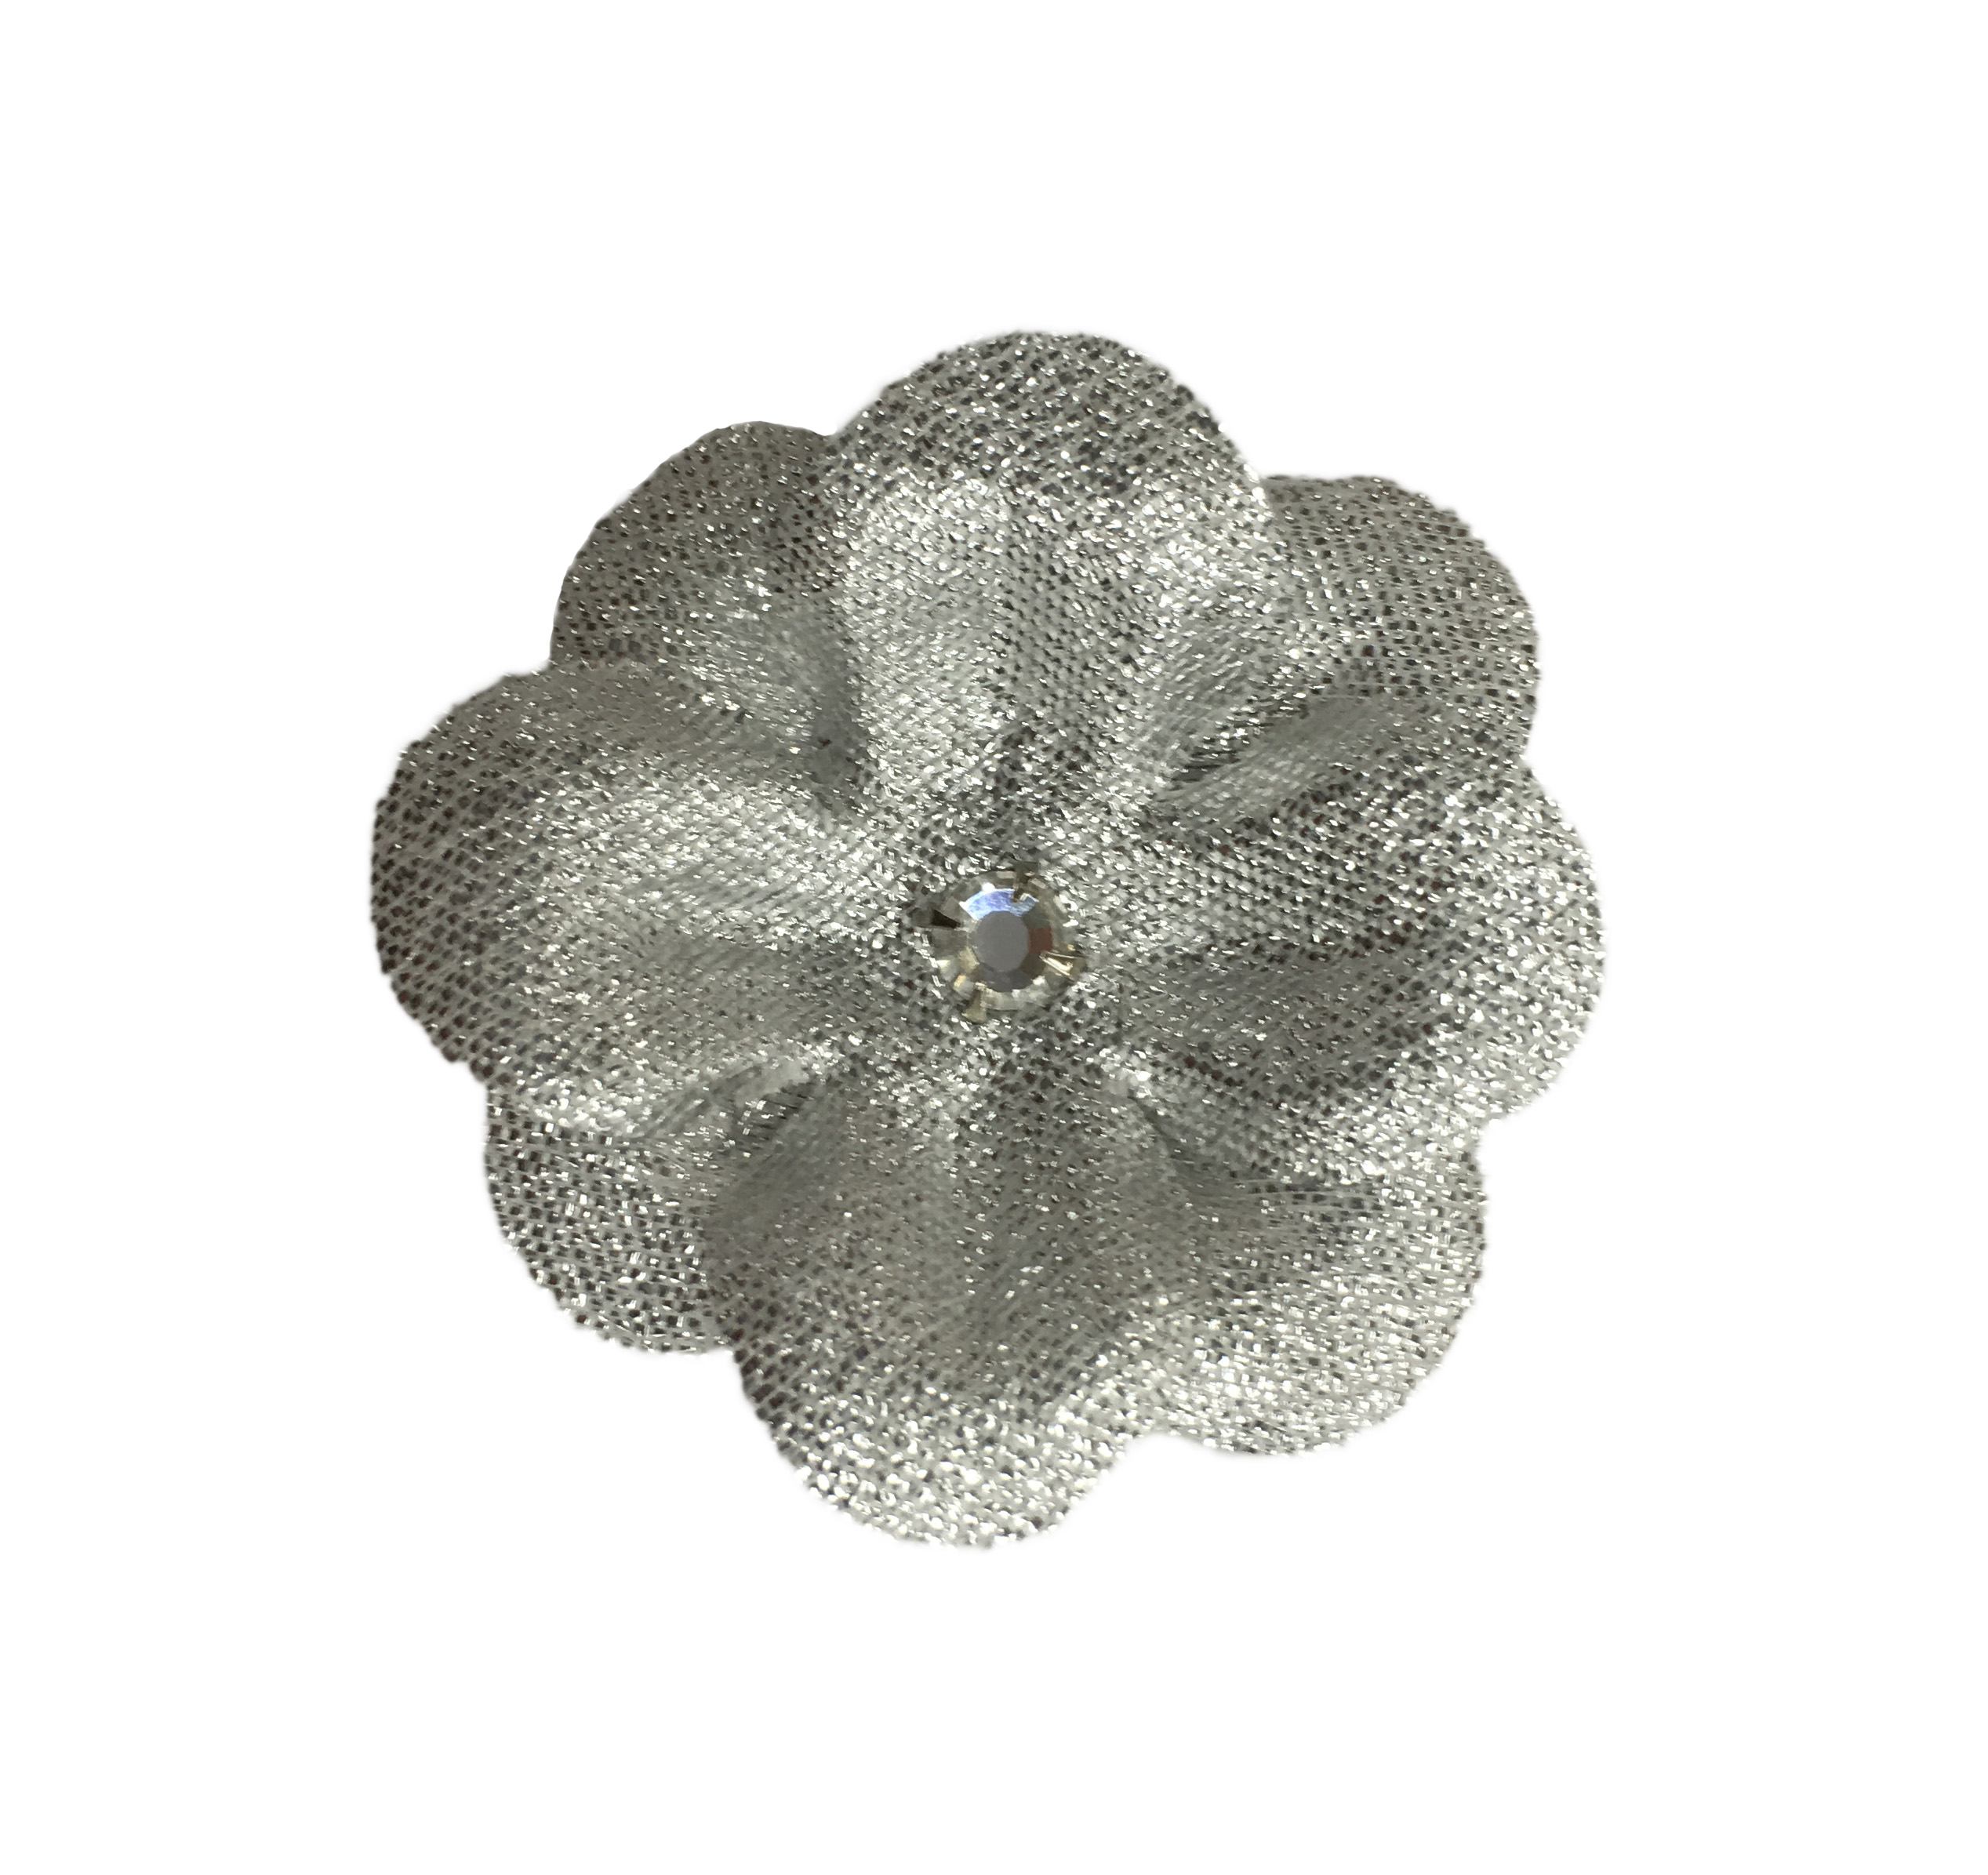 15 Silver Silk Flower Clips Set Of 2 Ms Schmalberg